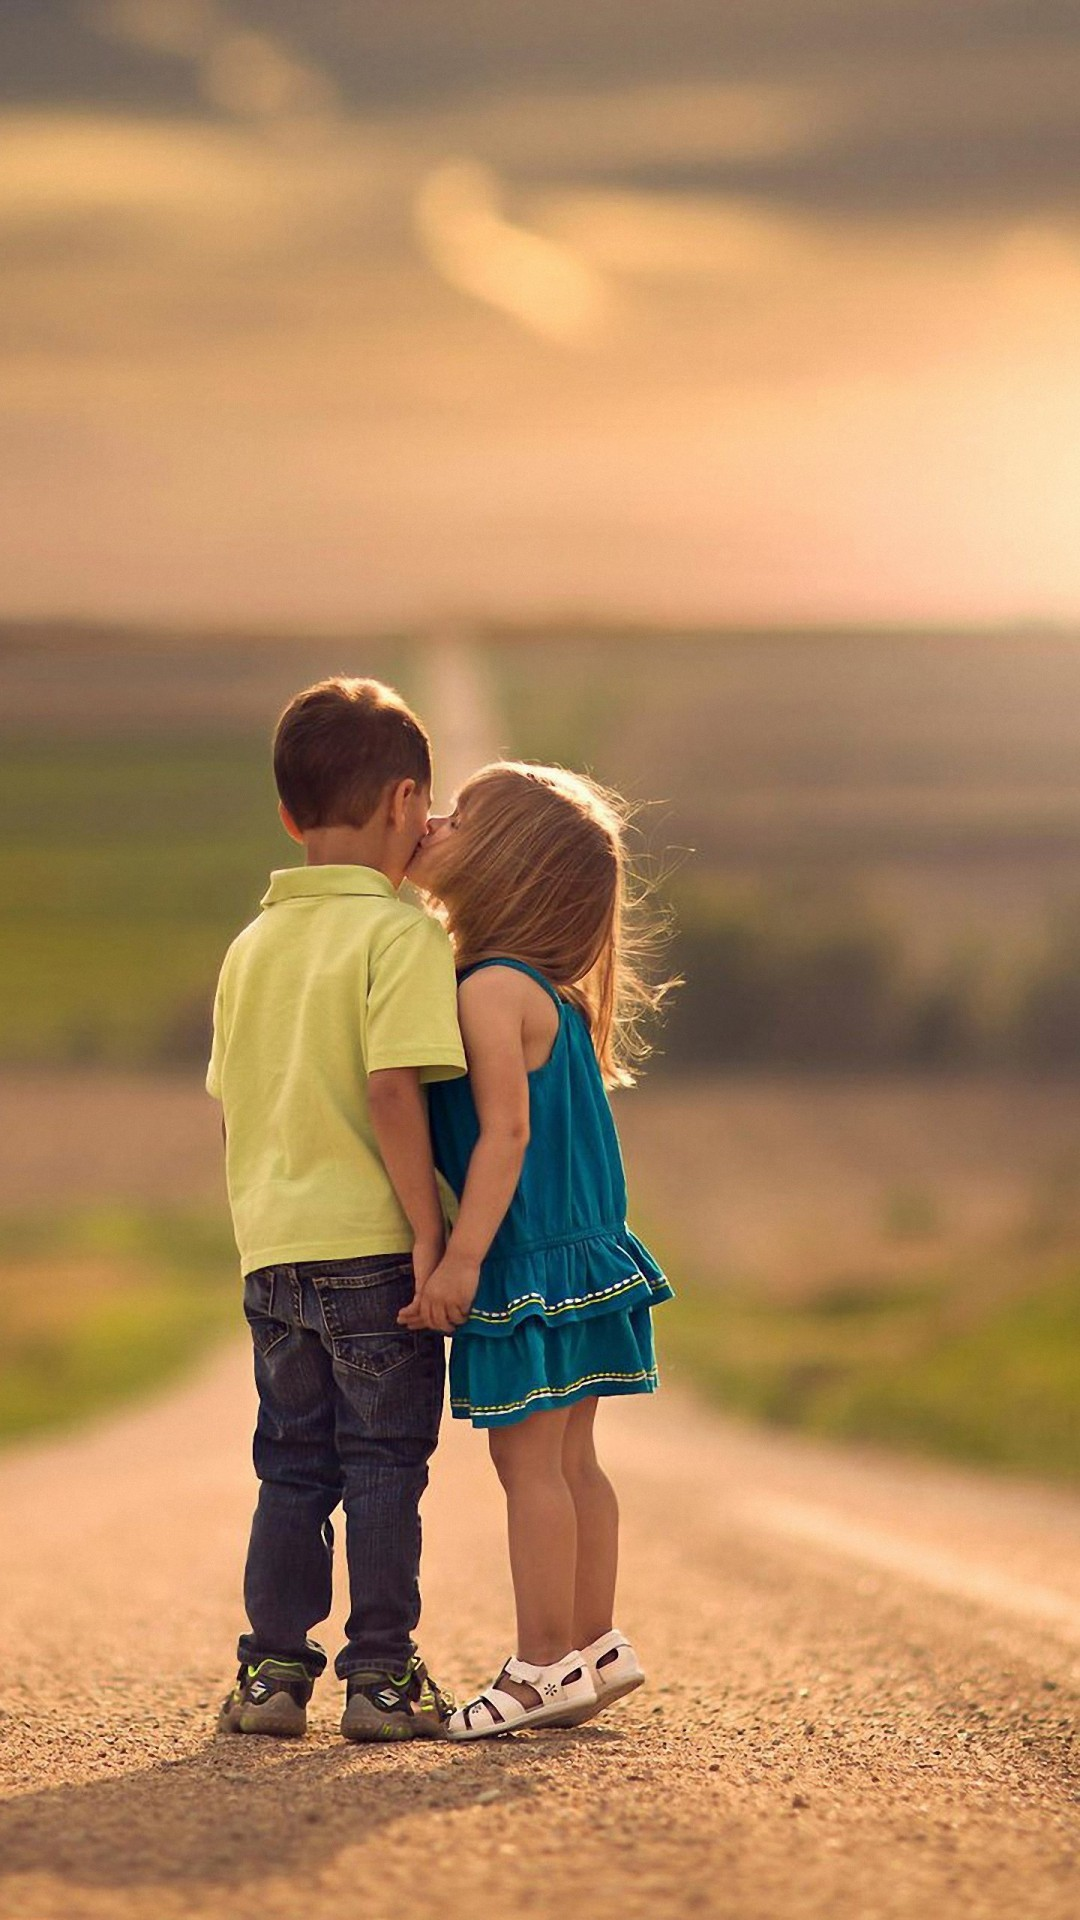 cute Love couple Hd Wallpaper For Mobile : cute Love Baby couple Wallpapers For Mobile Hd Wallpaper Images